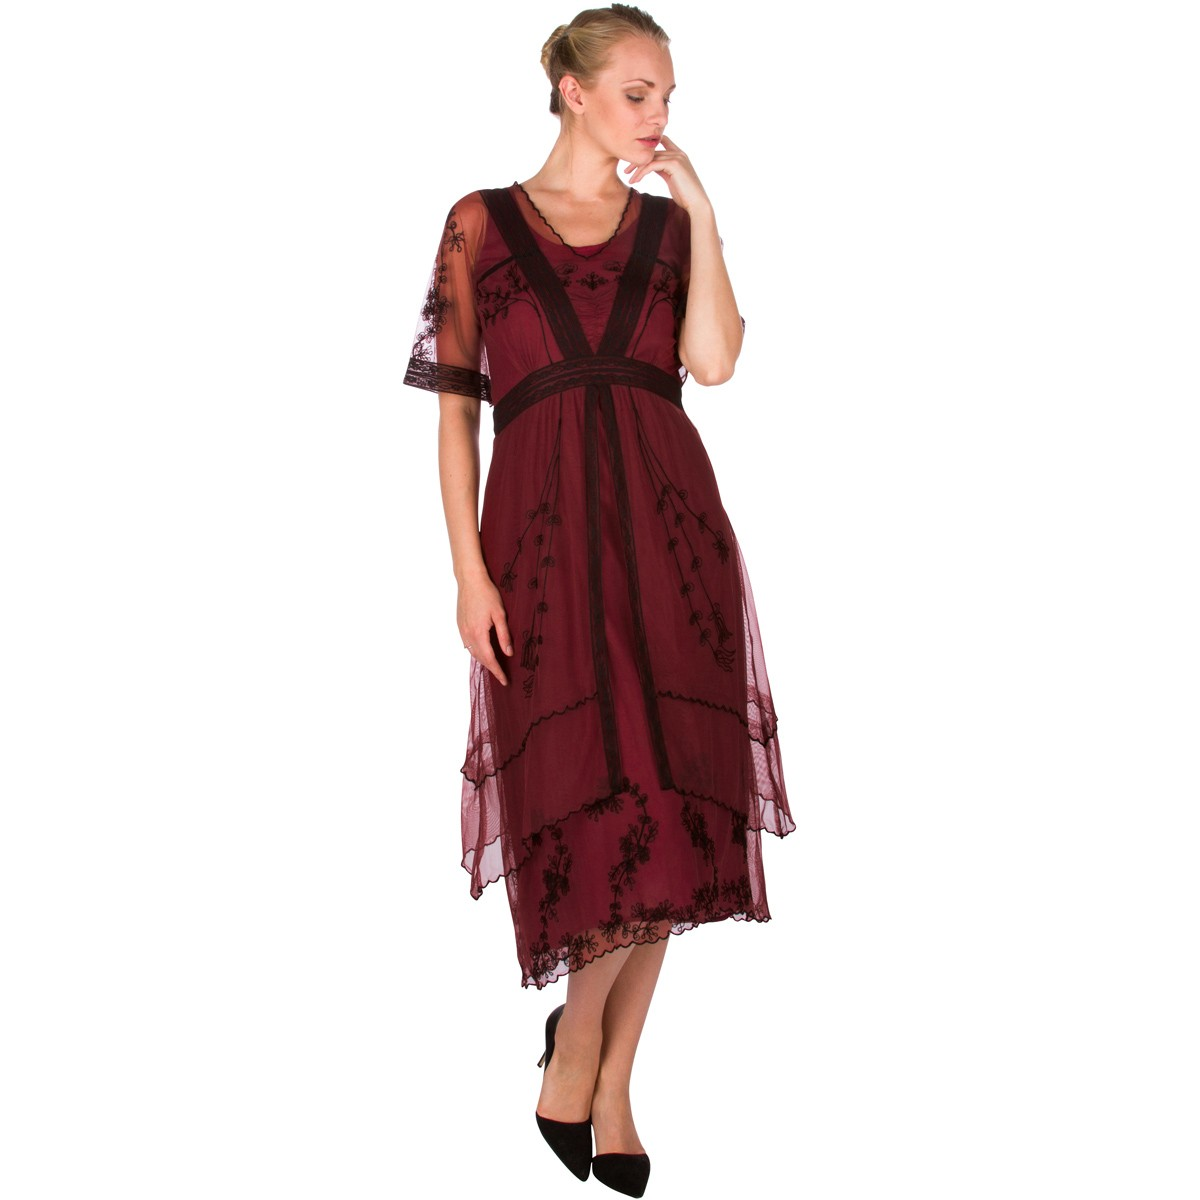 Vintage Inspired Embroidered Party Dress in Wine by Nataya